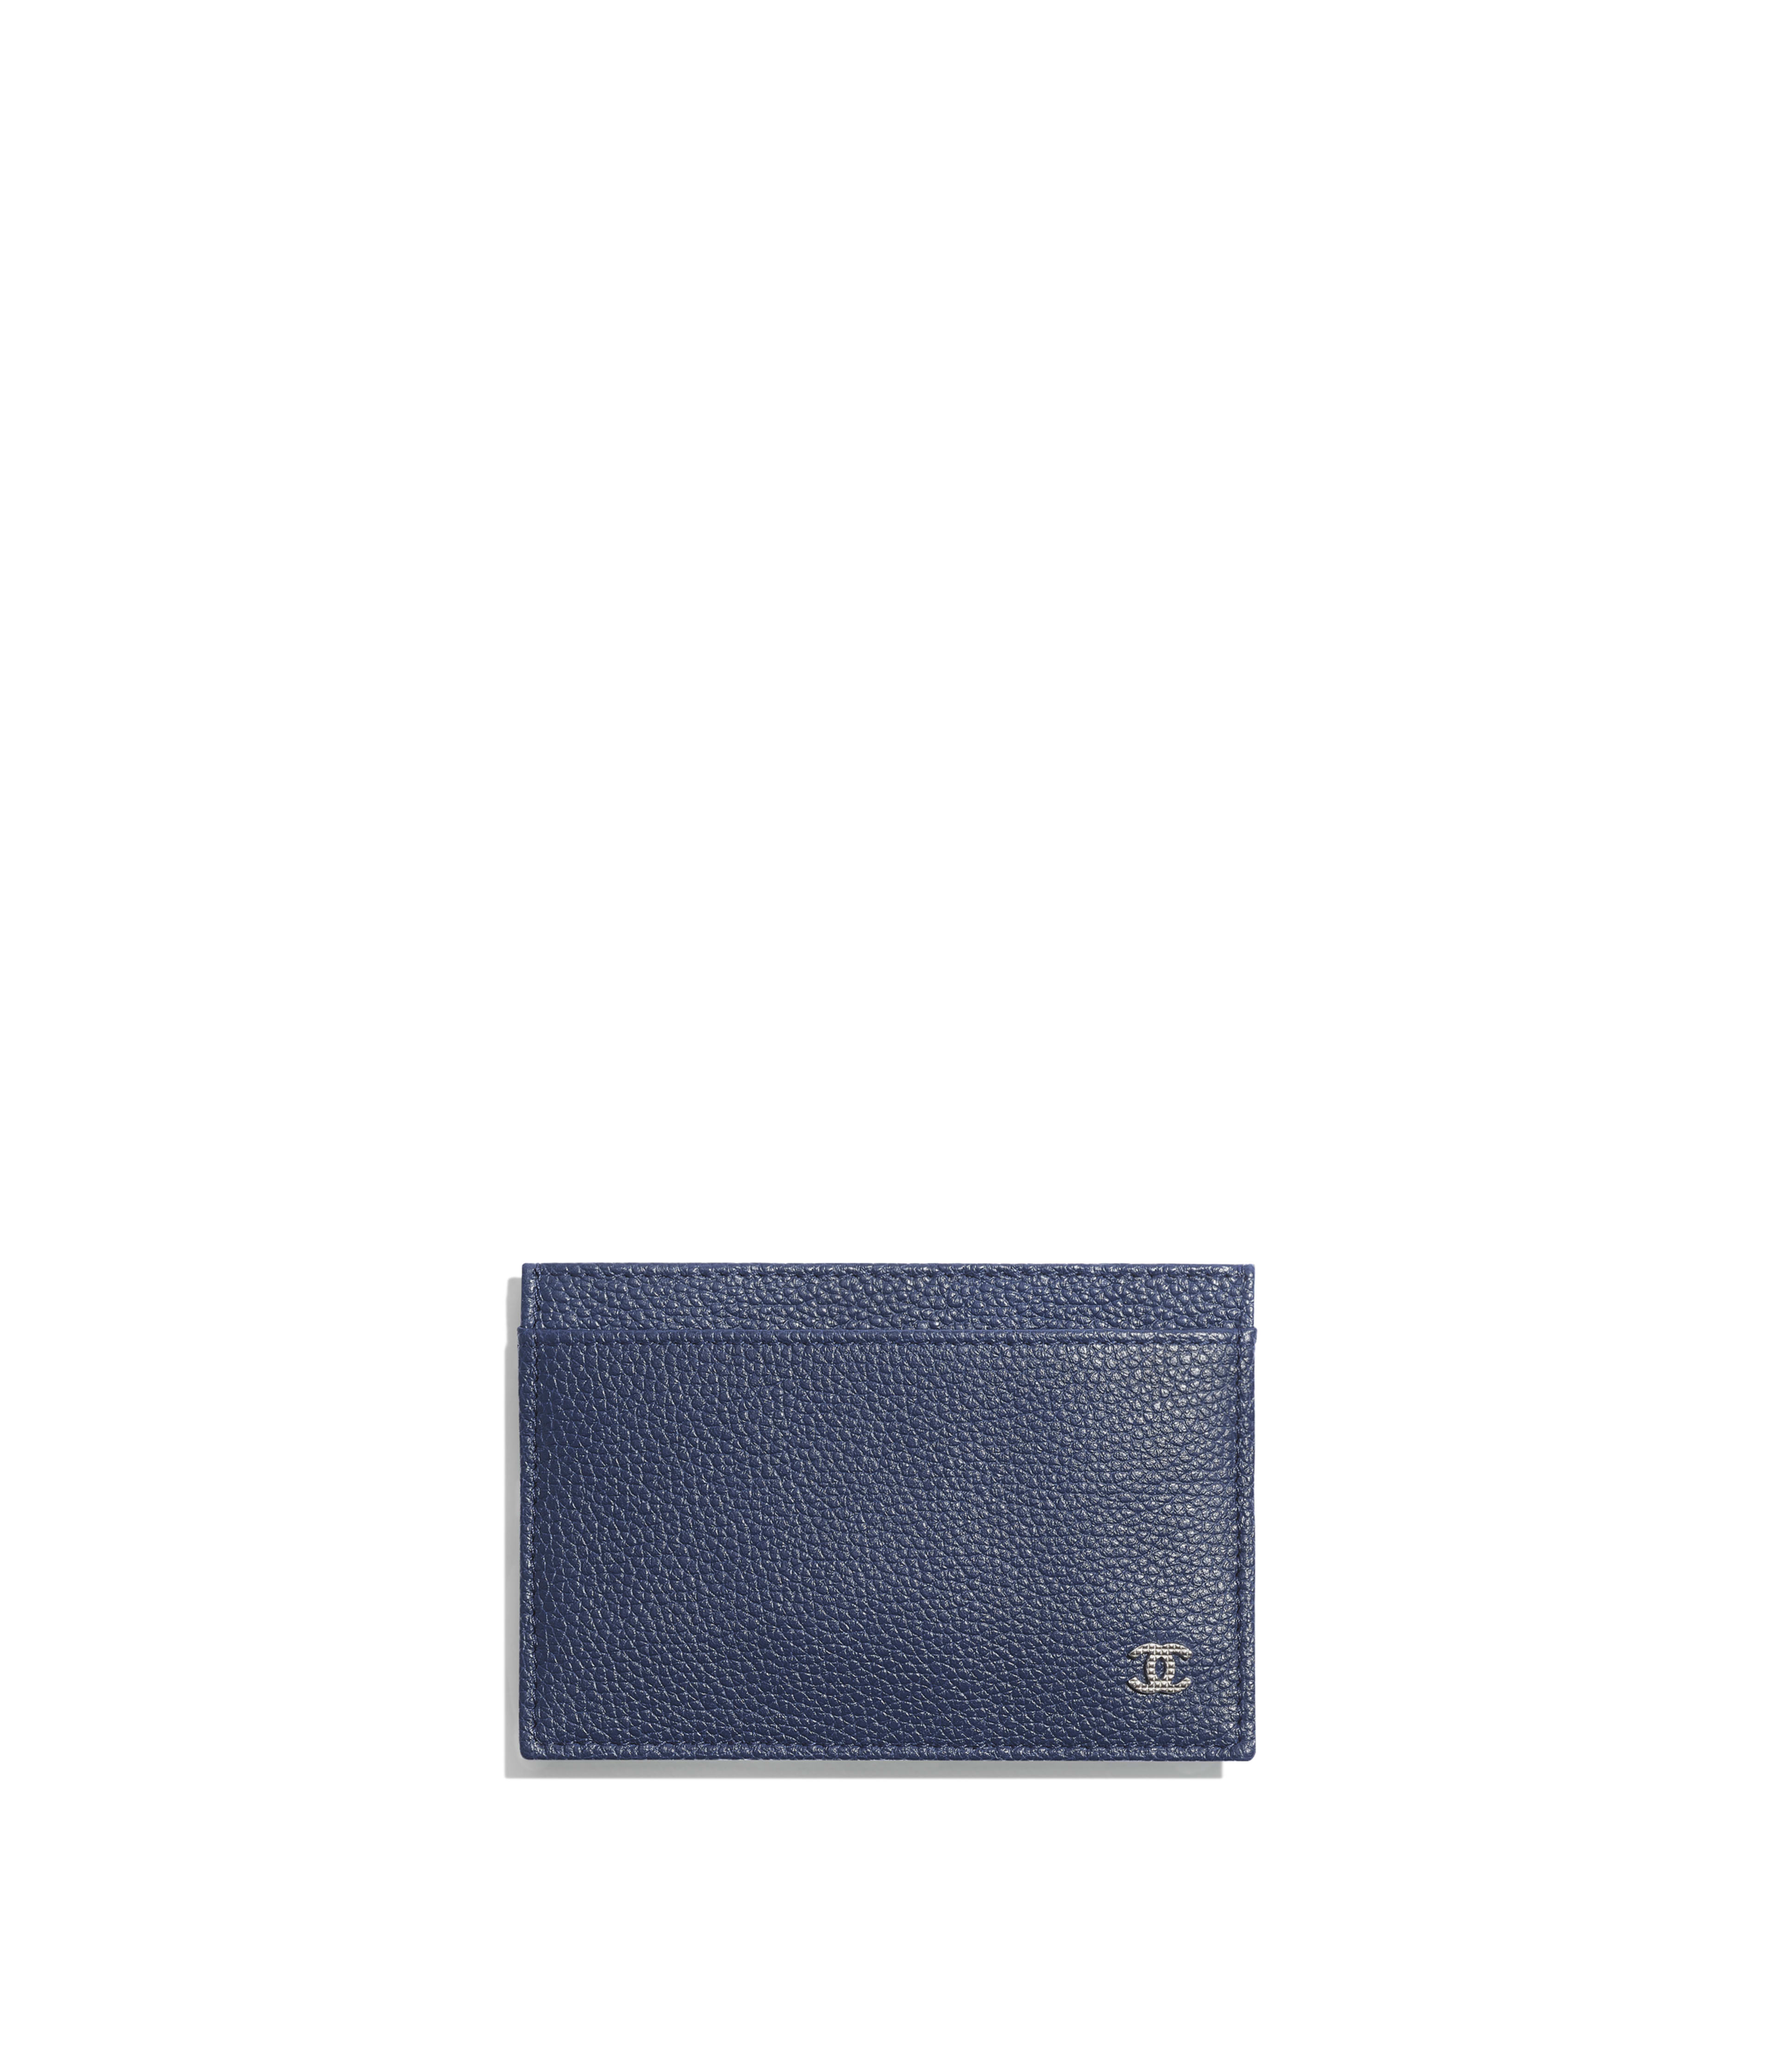 Card Holders Small Leather Goods Chanel